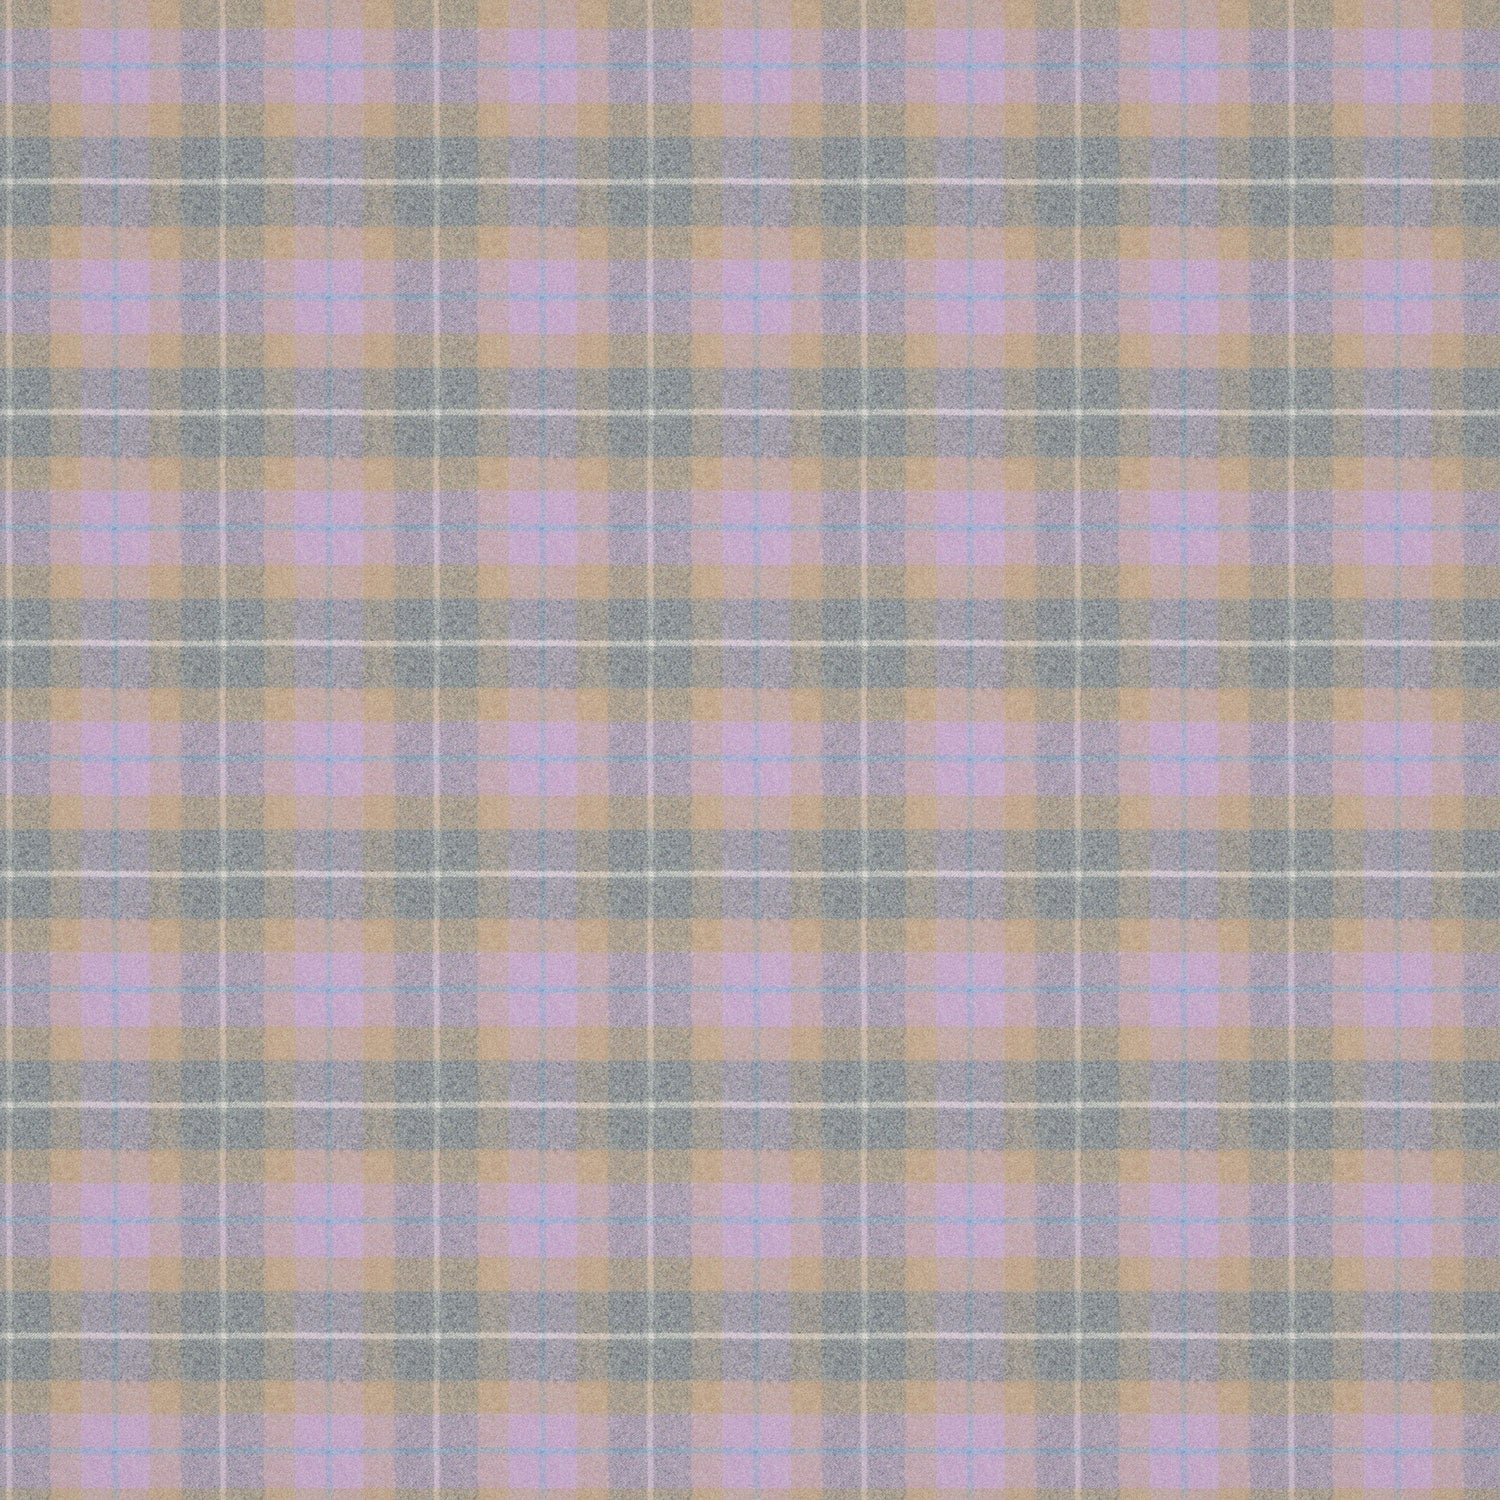 Lilac and grey plaid wool fabric suitable for both curtains and upholstery.